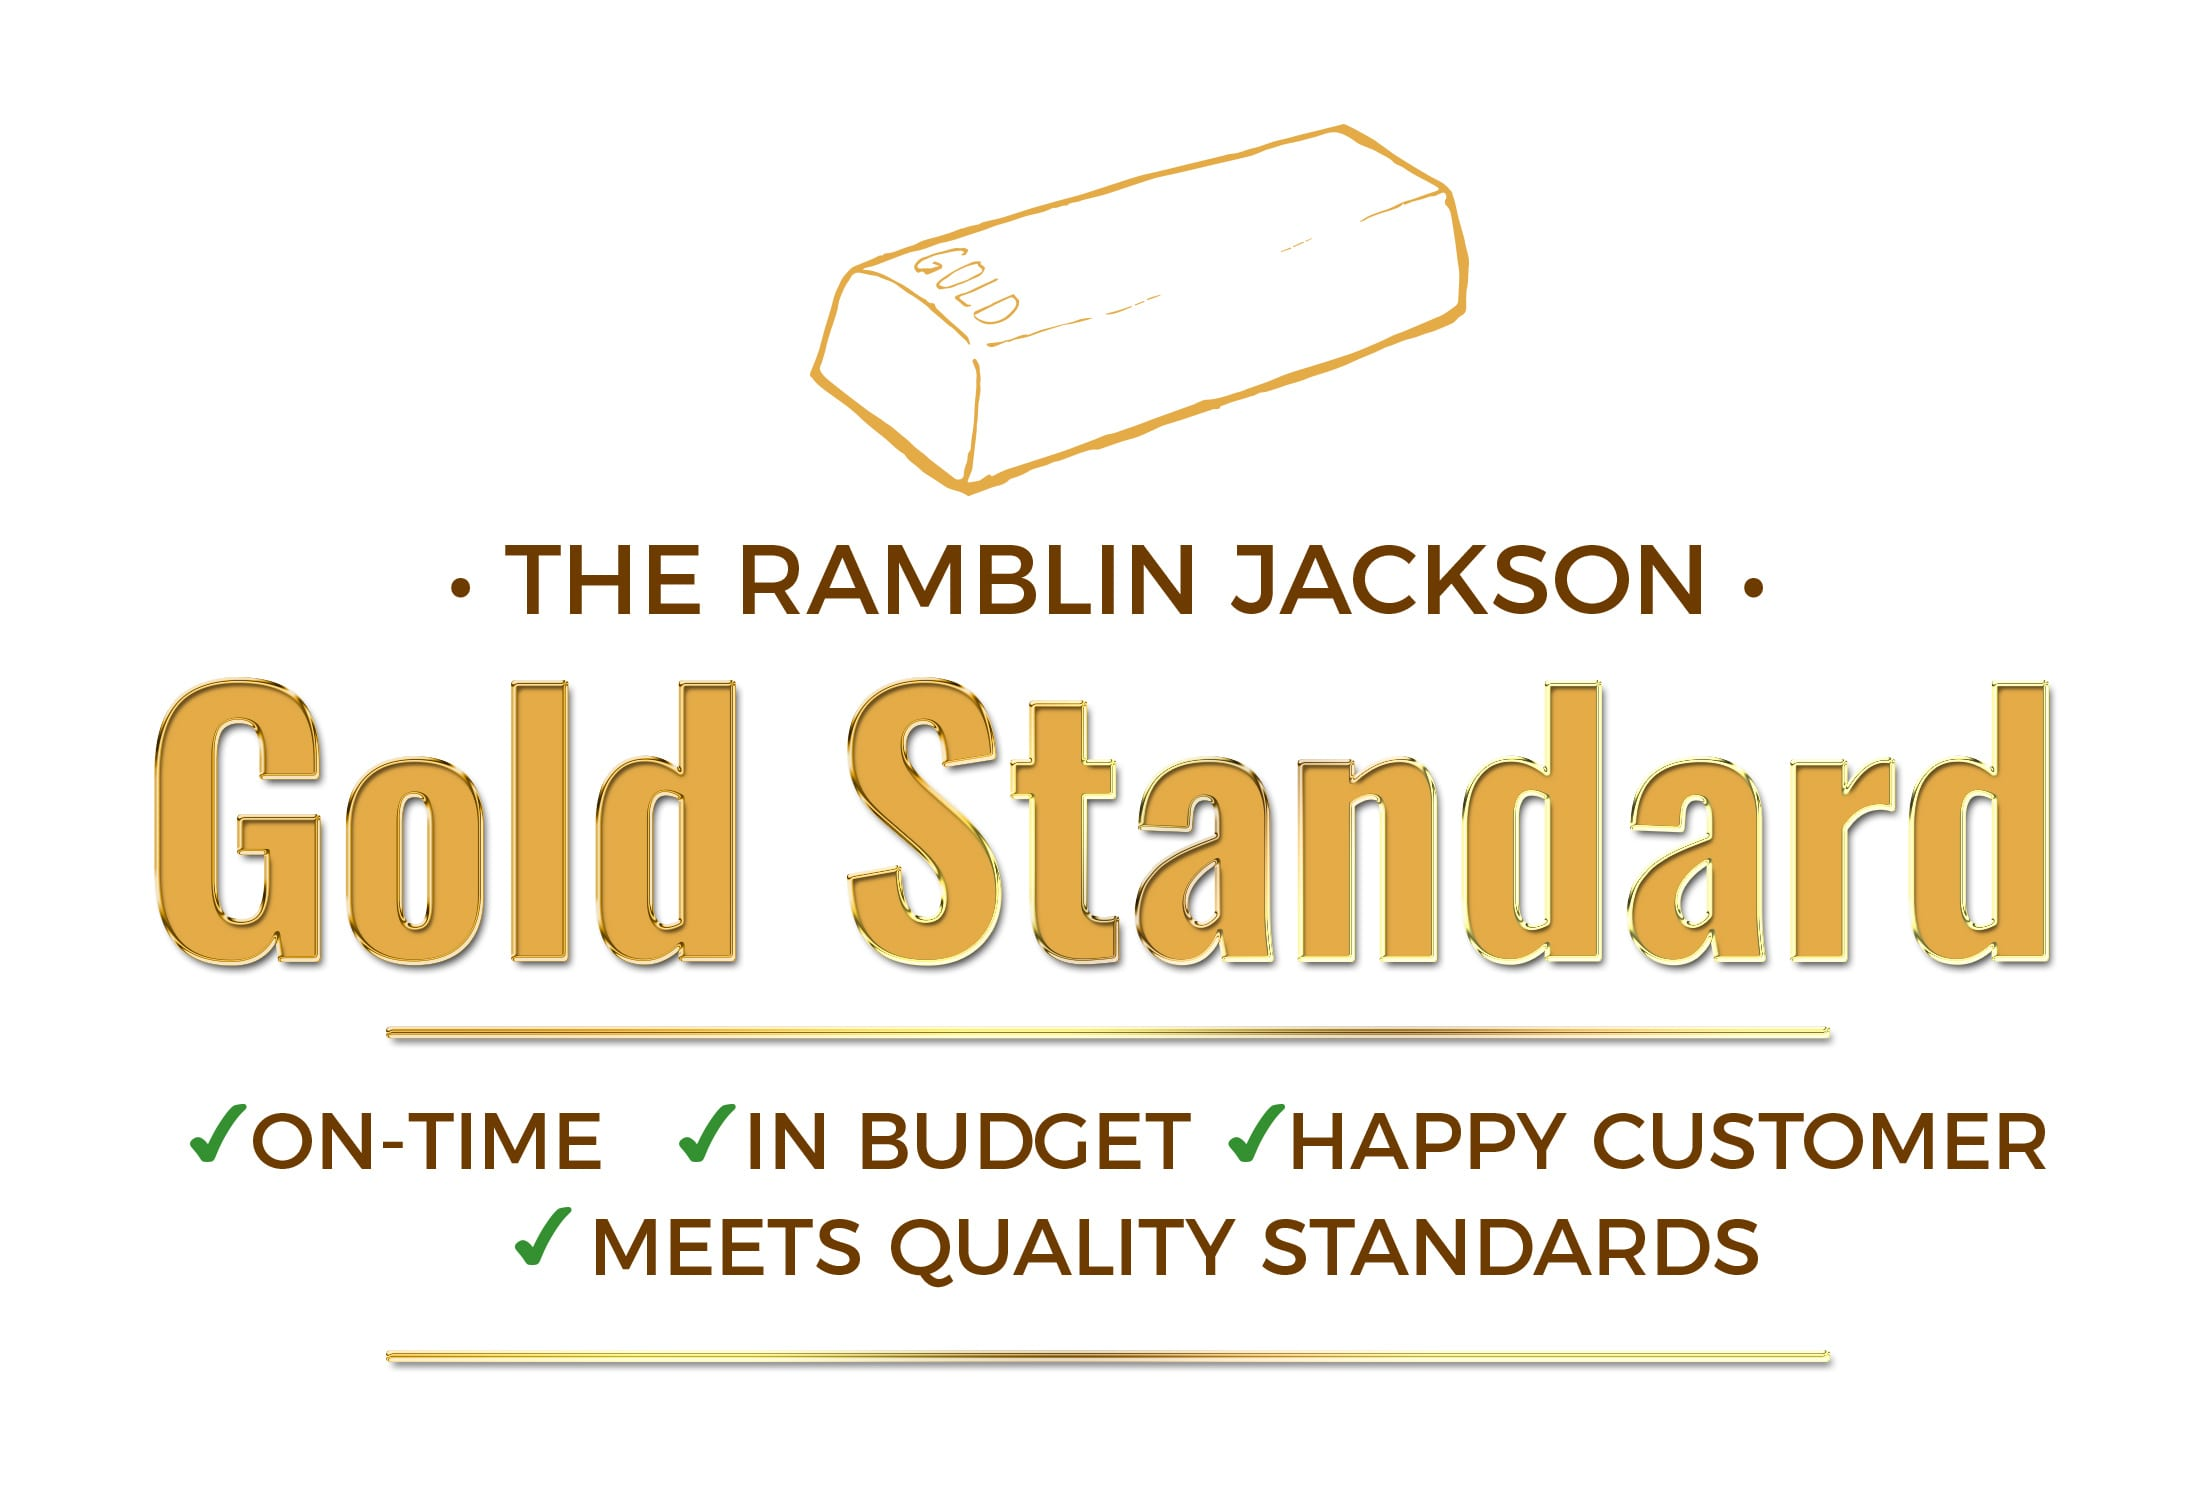 The Ramblin Jackson Gold Standard